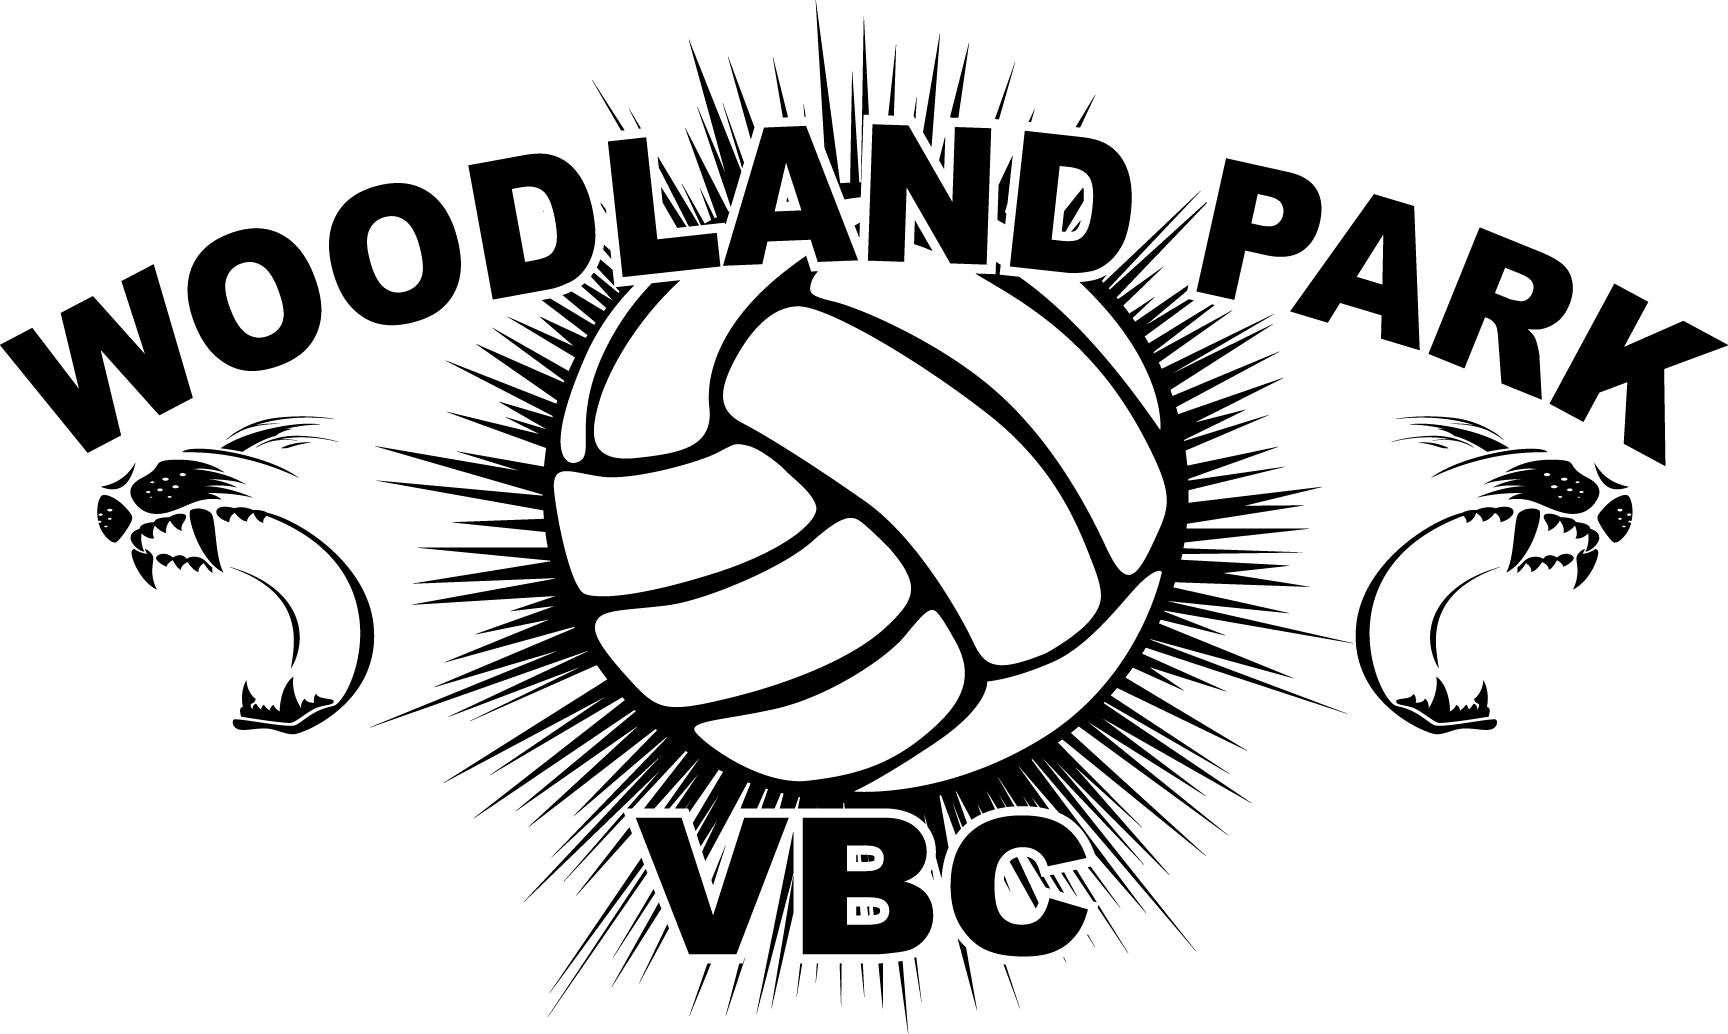 Home [woodlandparkvolleyball.com]